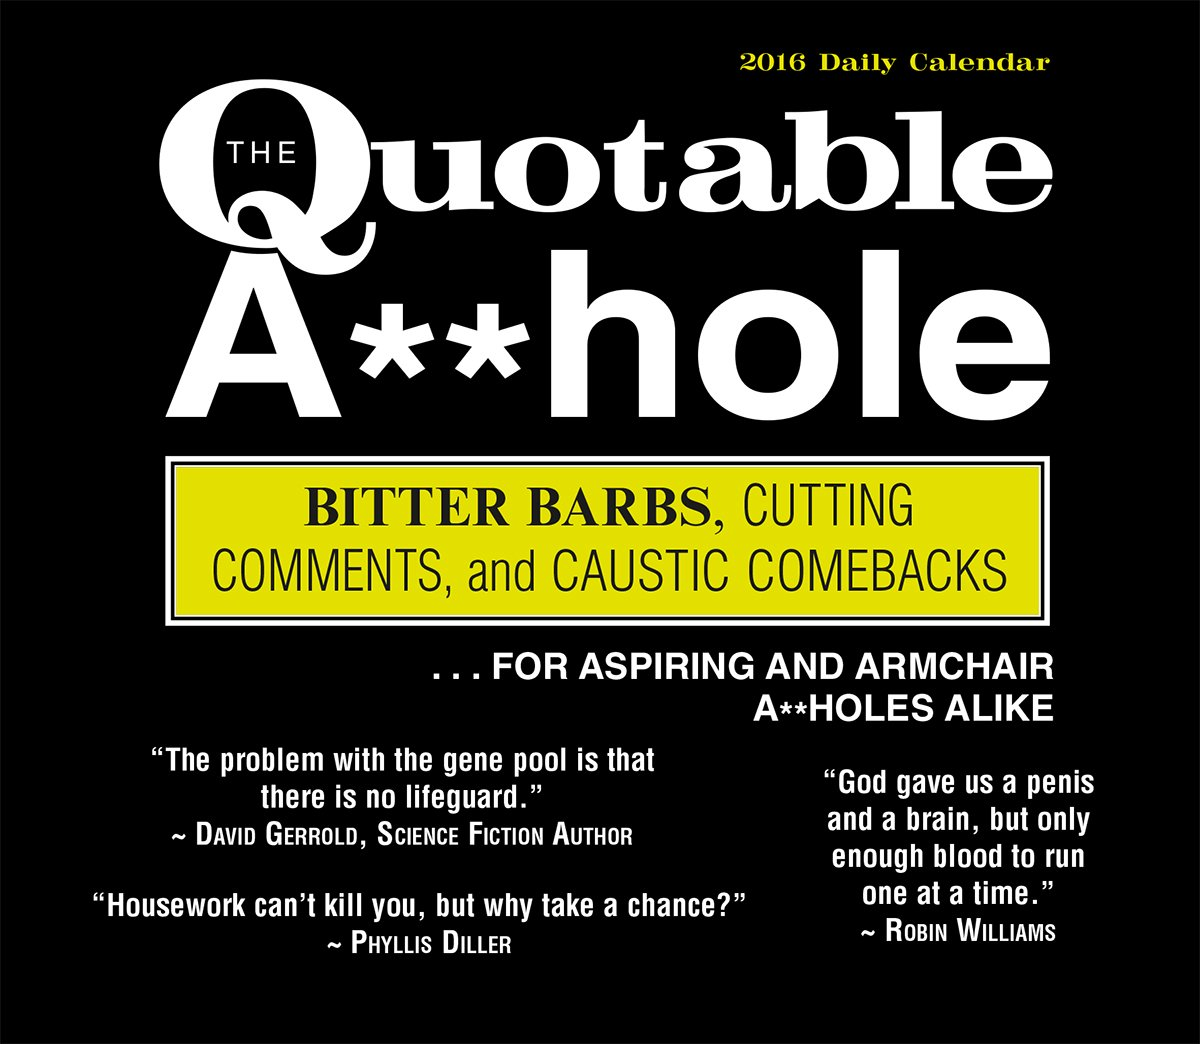 Quotable A-hole 2016 Boxed/Daily Calendar PDF